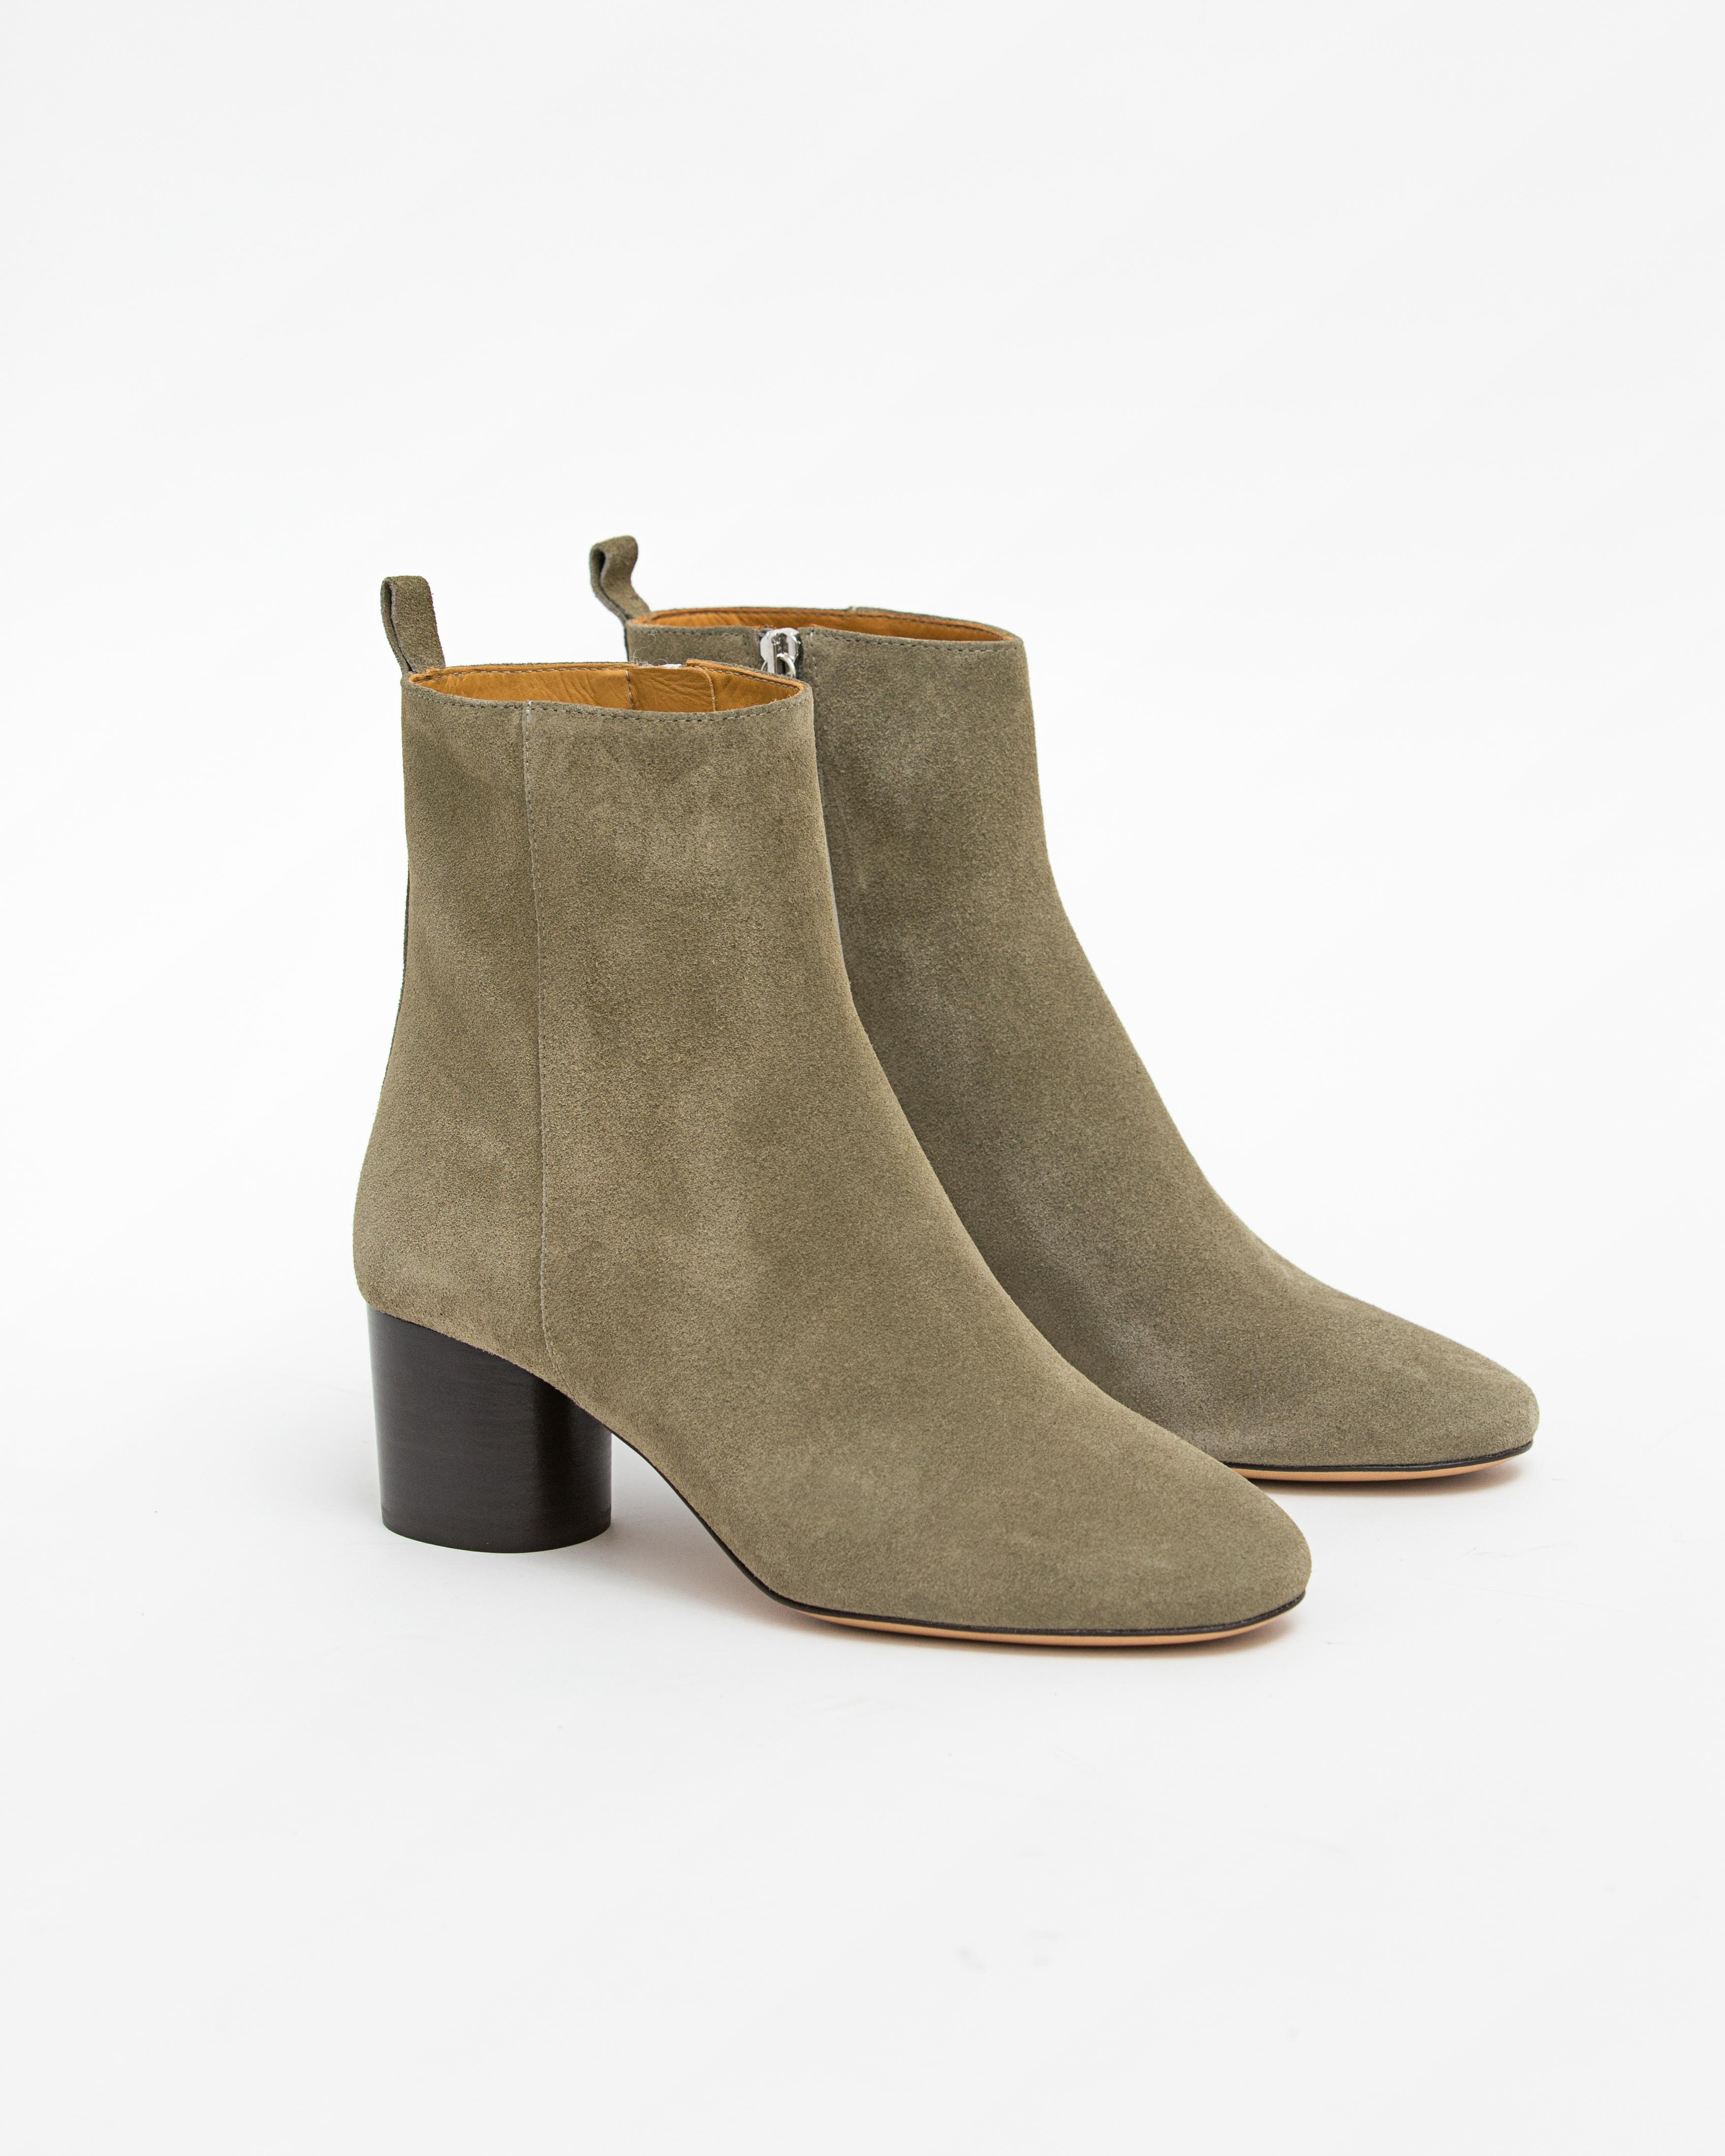 Isabel Marant Etoile 5 - Deyissa Suede Ankle Boot - Taupe